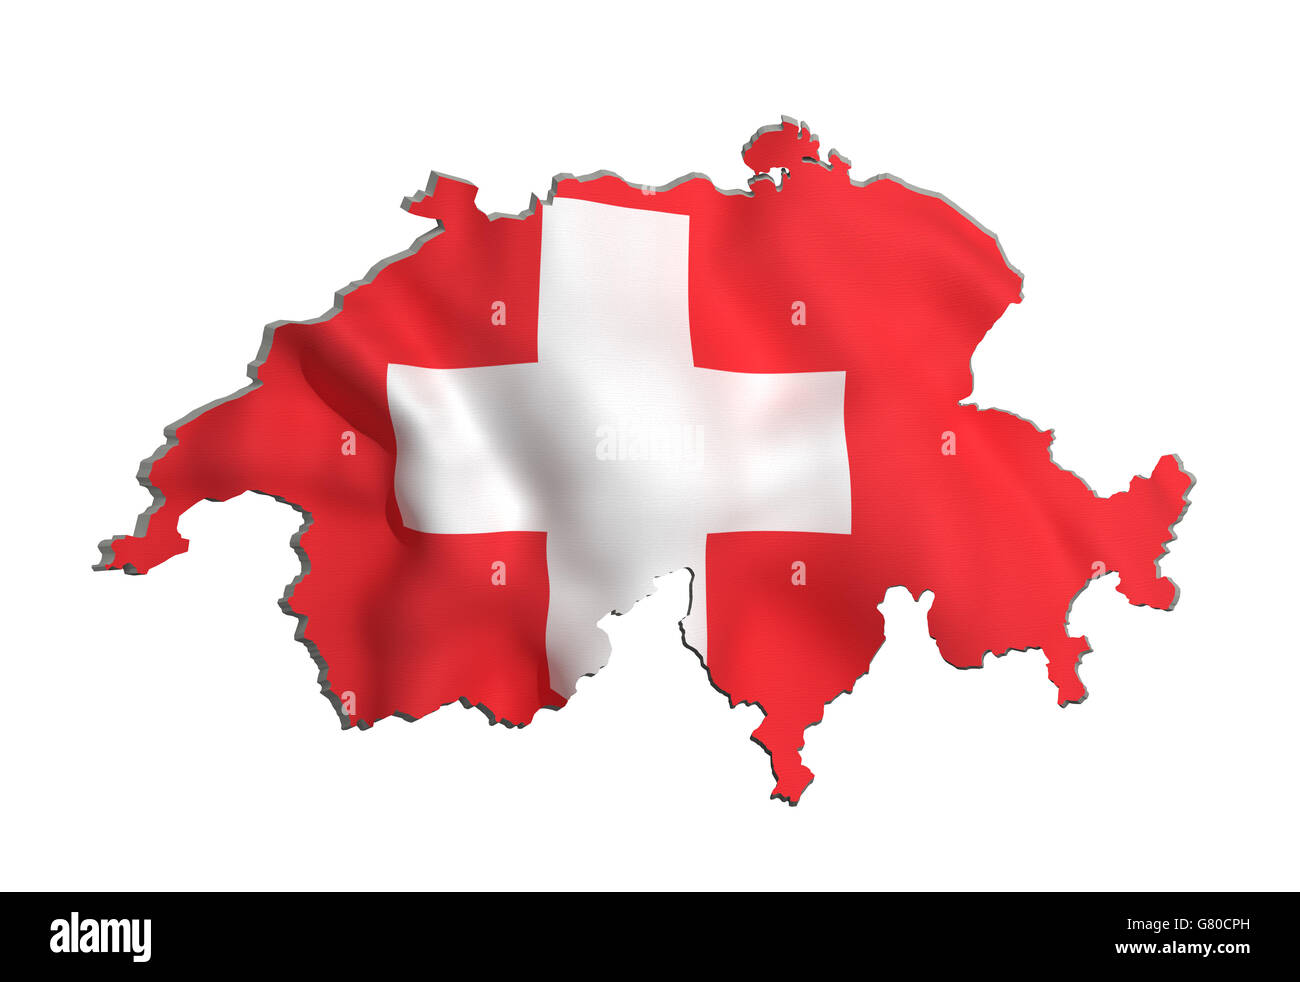 3d rendering of Switzerland map and flag on white background. - Stock Image